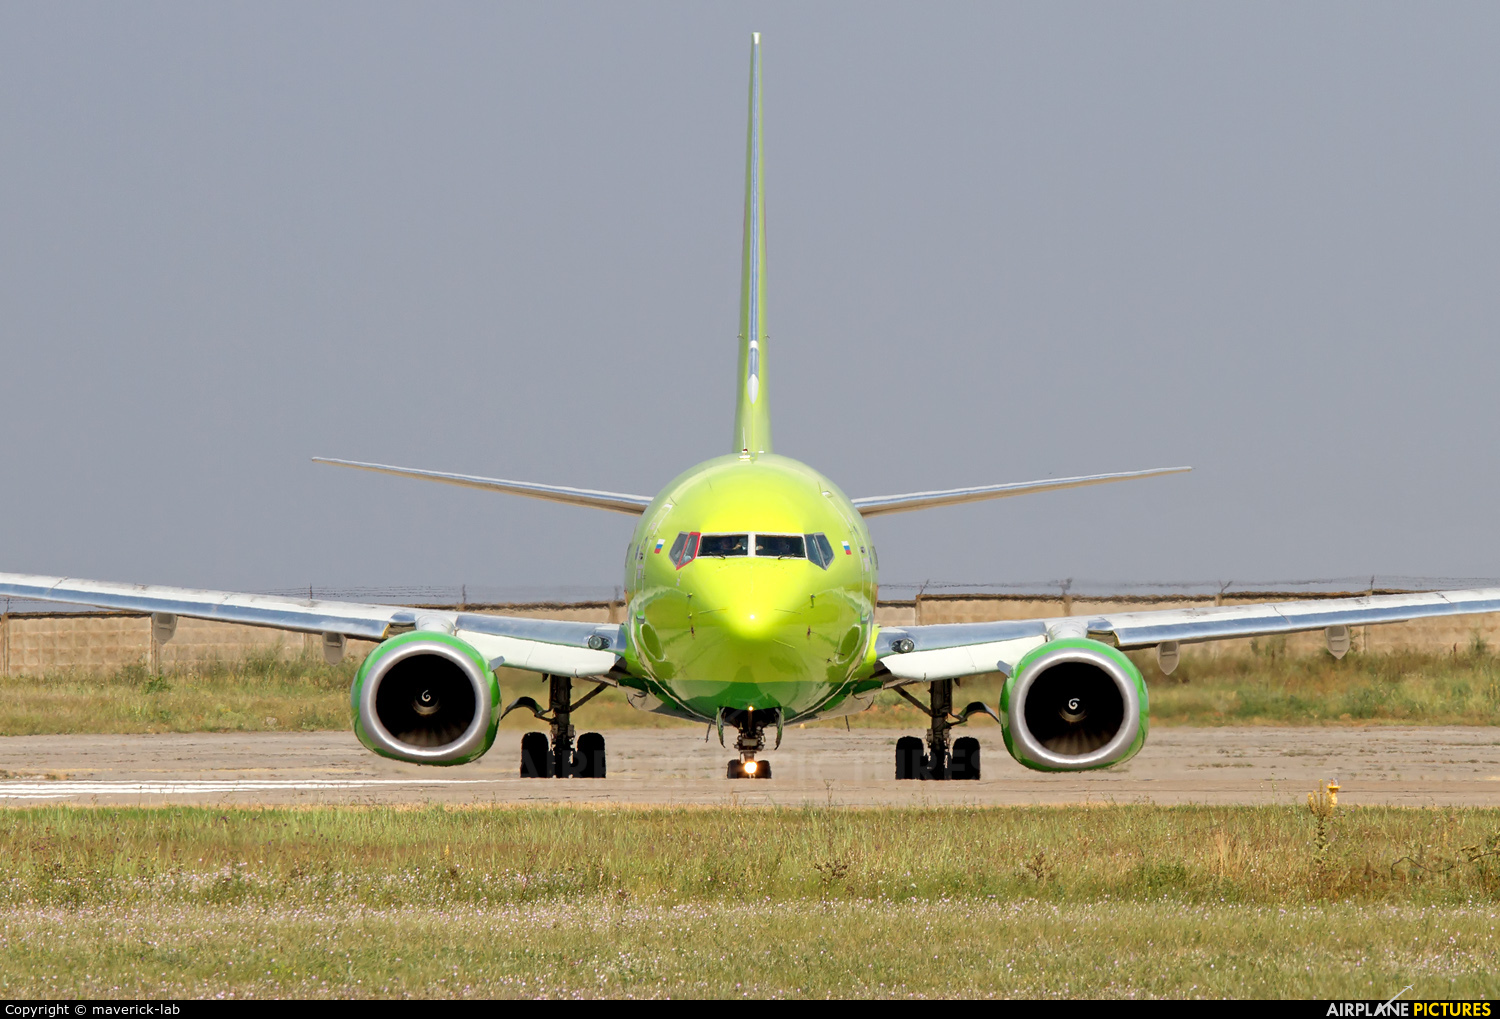 S7 Airlines VQ-BKV aircraft at Simferopol International Airport (under Russian occupation)